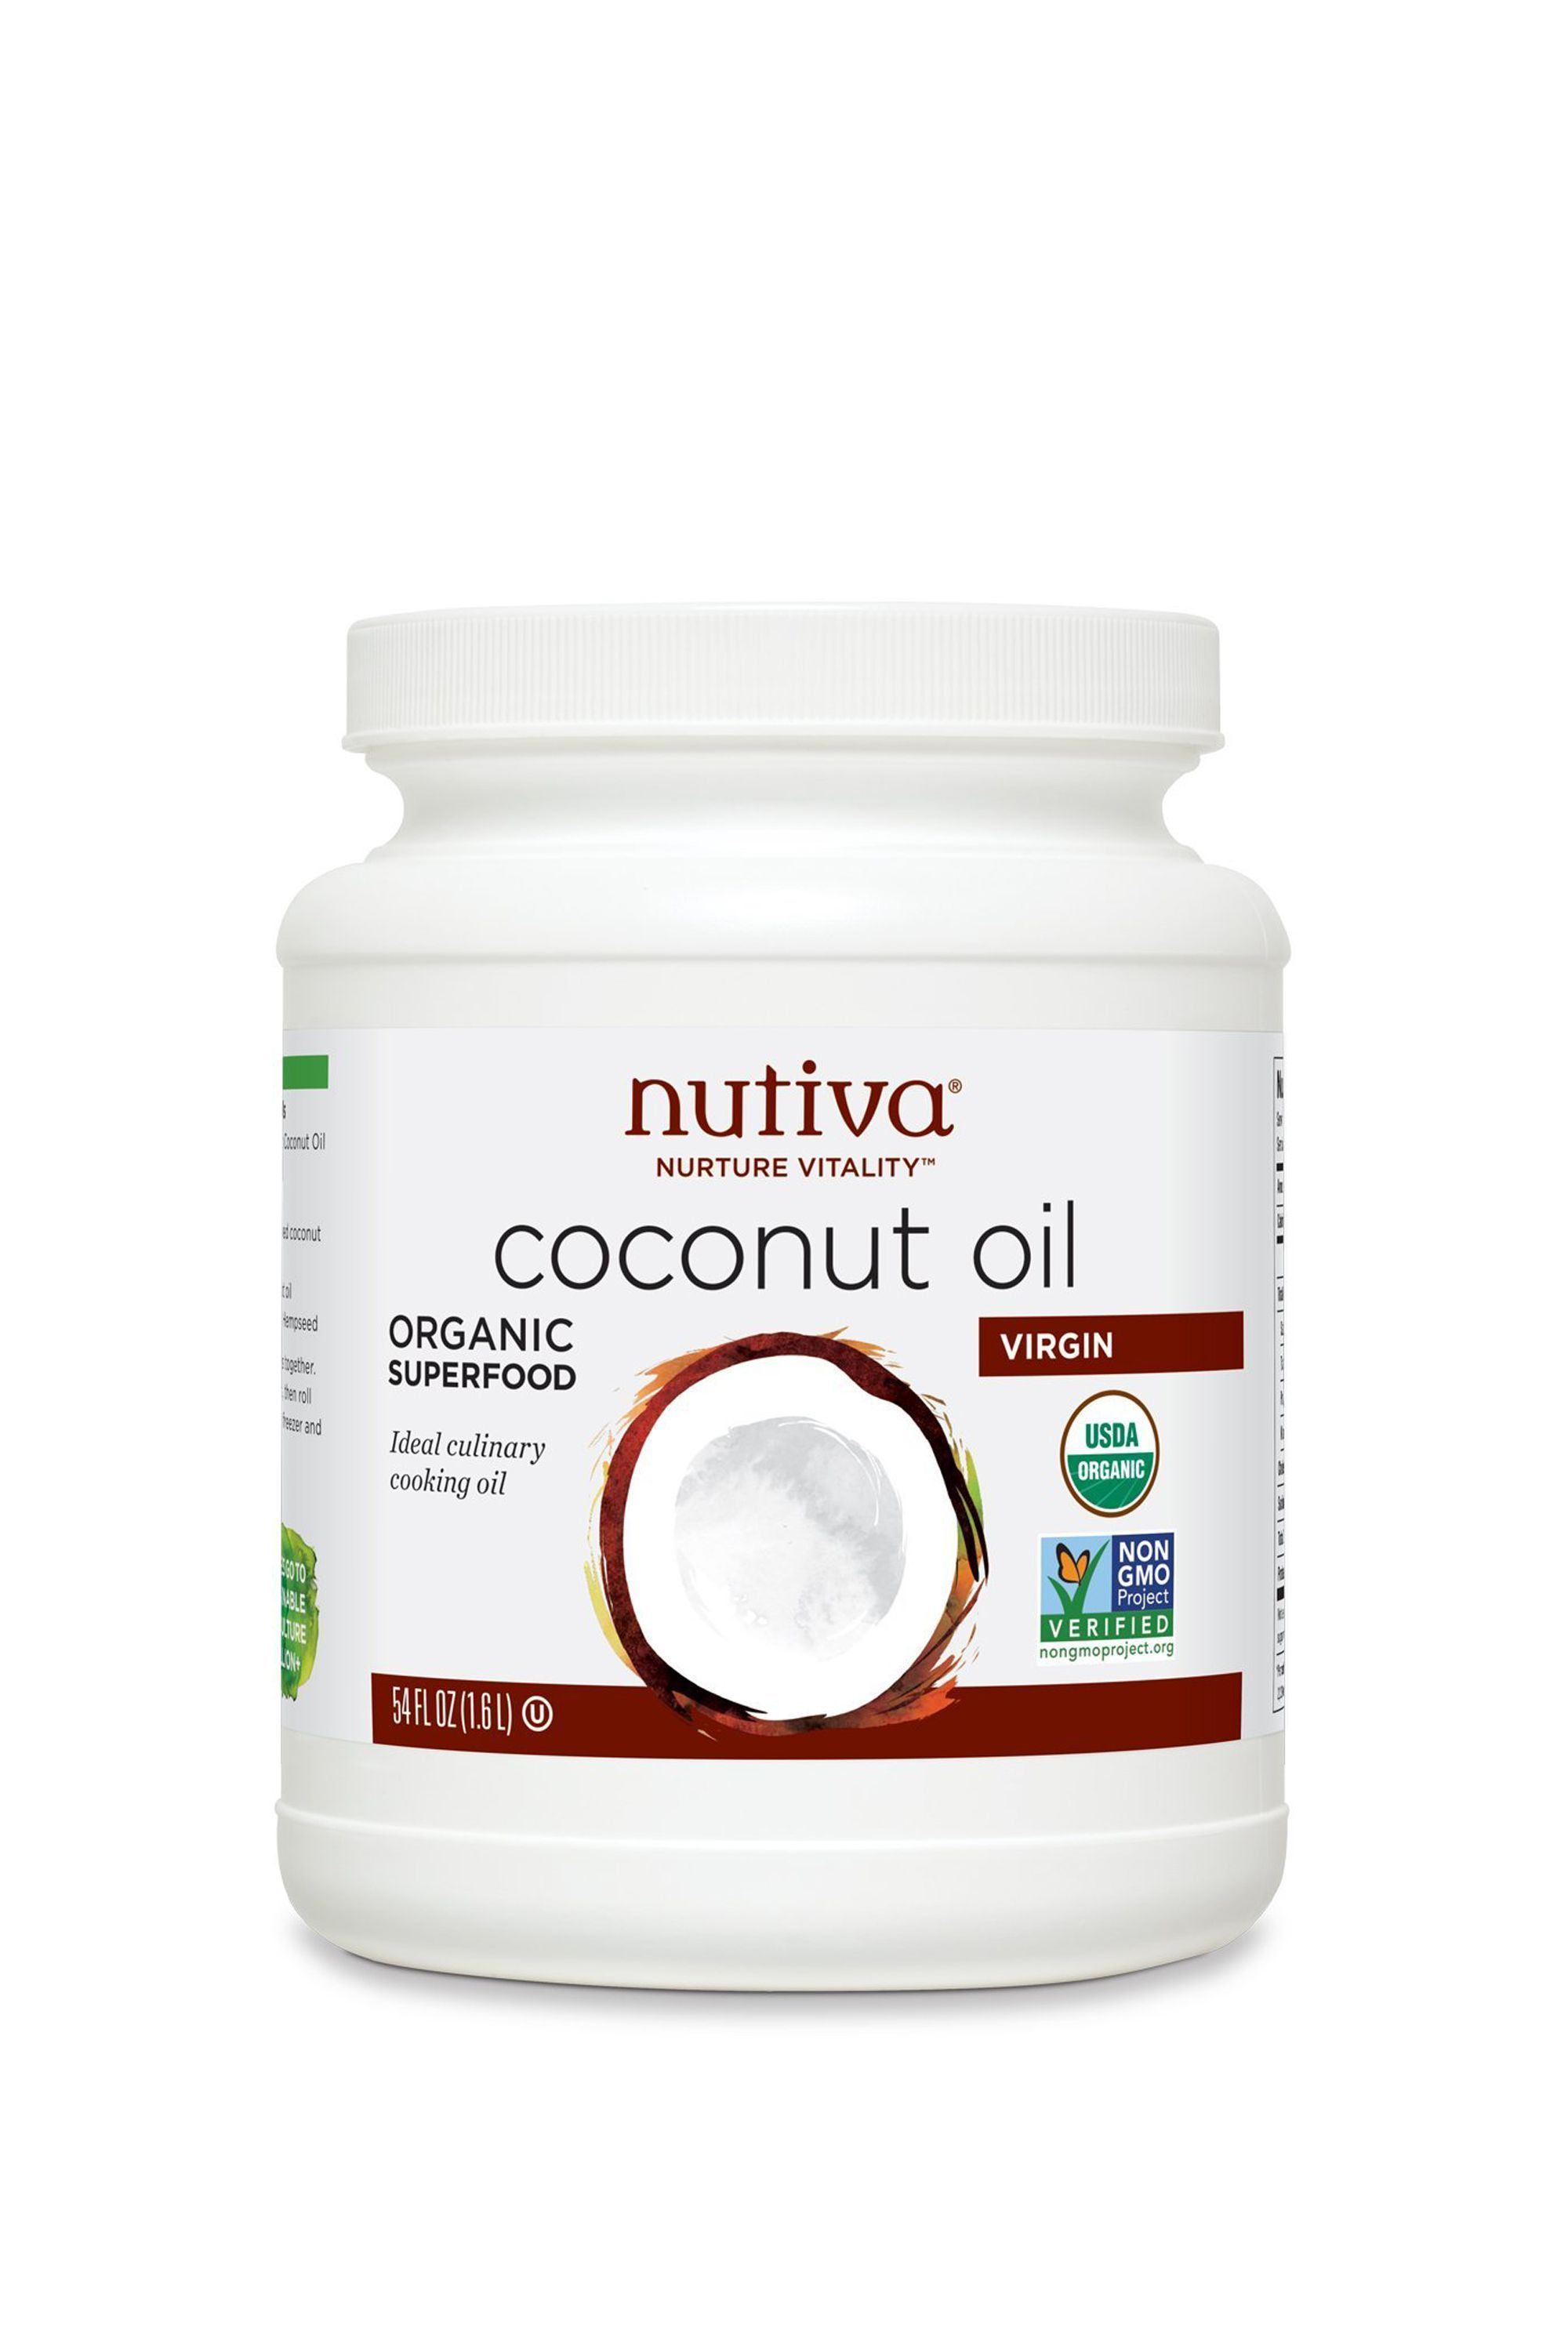 Nutiva Organic Cold-Pressed Unrefined Virgin Coconut Oil Nutiva vitaminshoppe.com $9.99 SHOP NOW An all-natural option. Coconut oil has a number of uses because of its moisturizing properties.